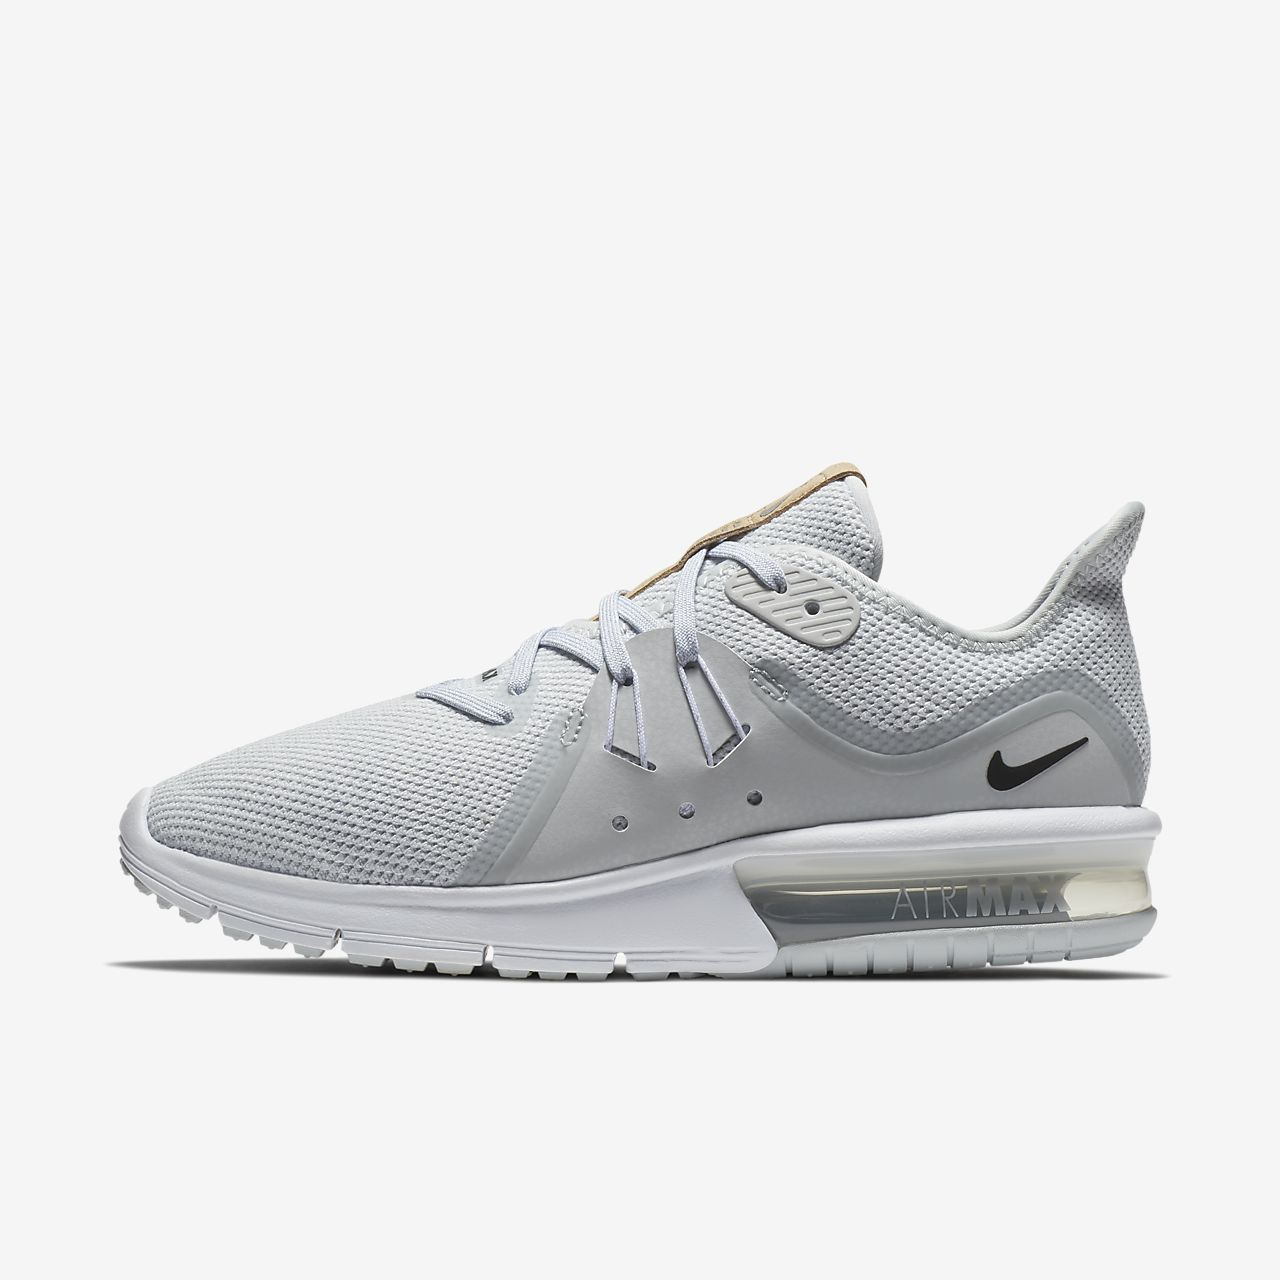 detailed look 40c8f 7309c ... Nike Air Max Sequent 3 Damenschuh